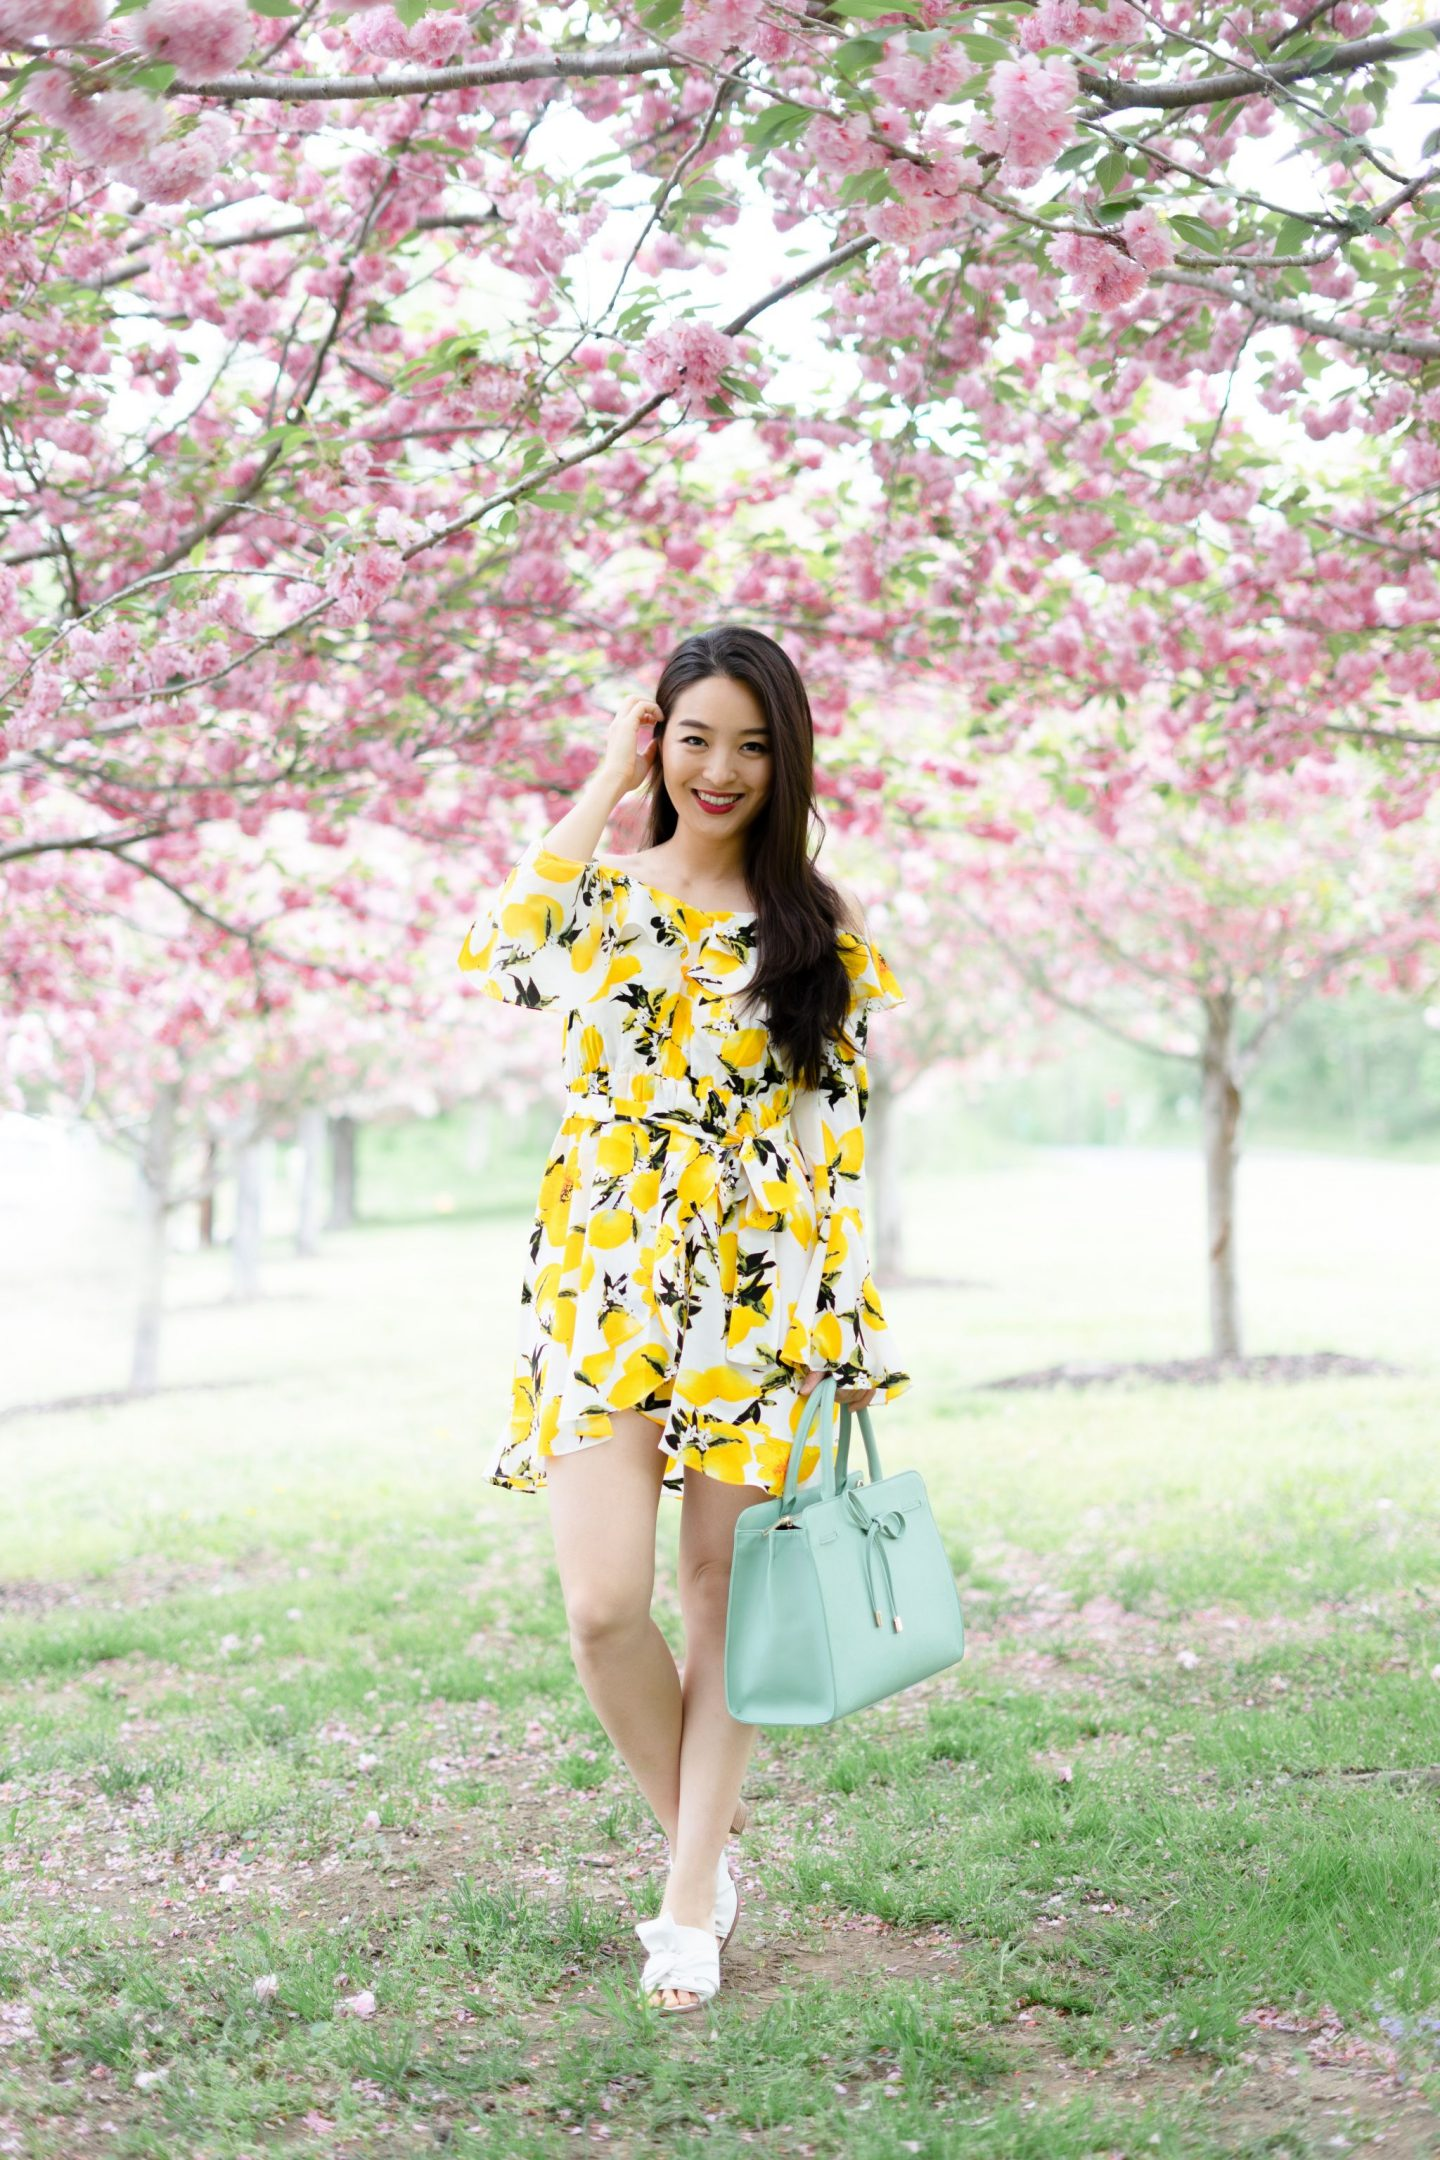 fashion blogger posing under flowers